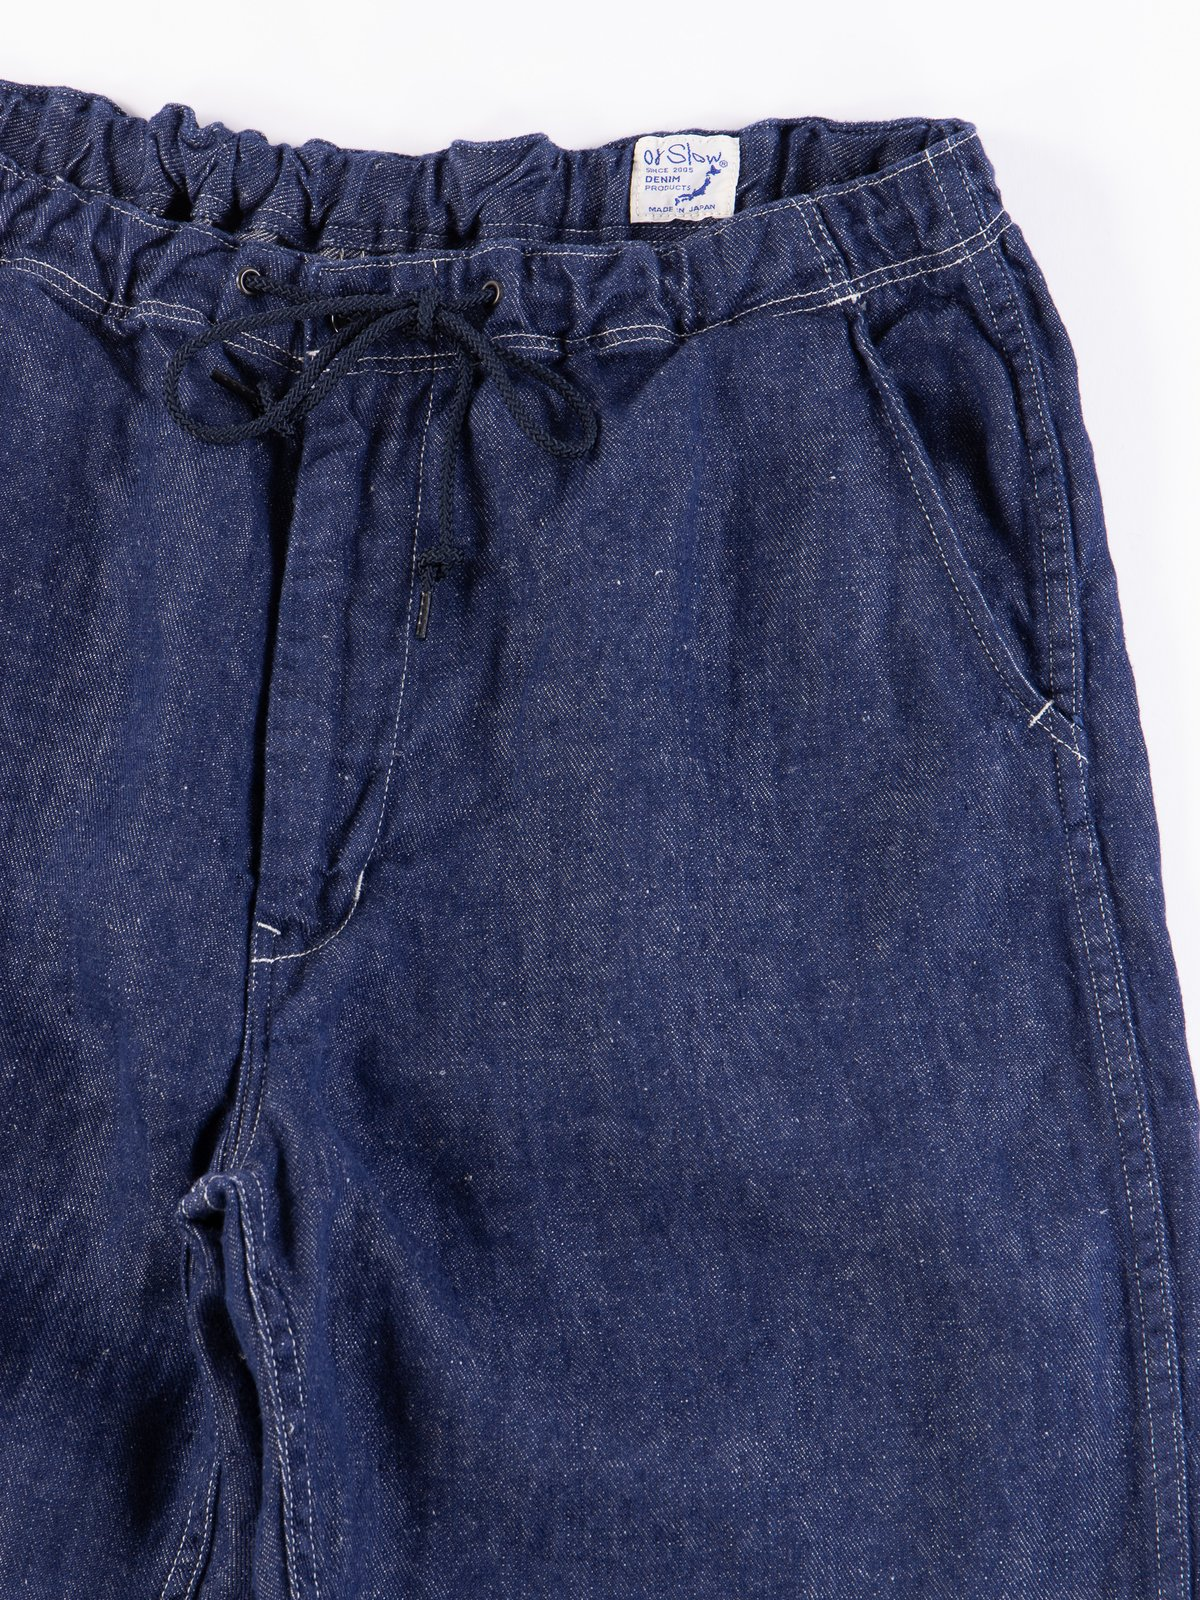 One Wash Denim TBB Mill Pant - Image 4